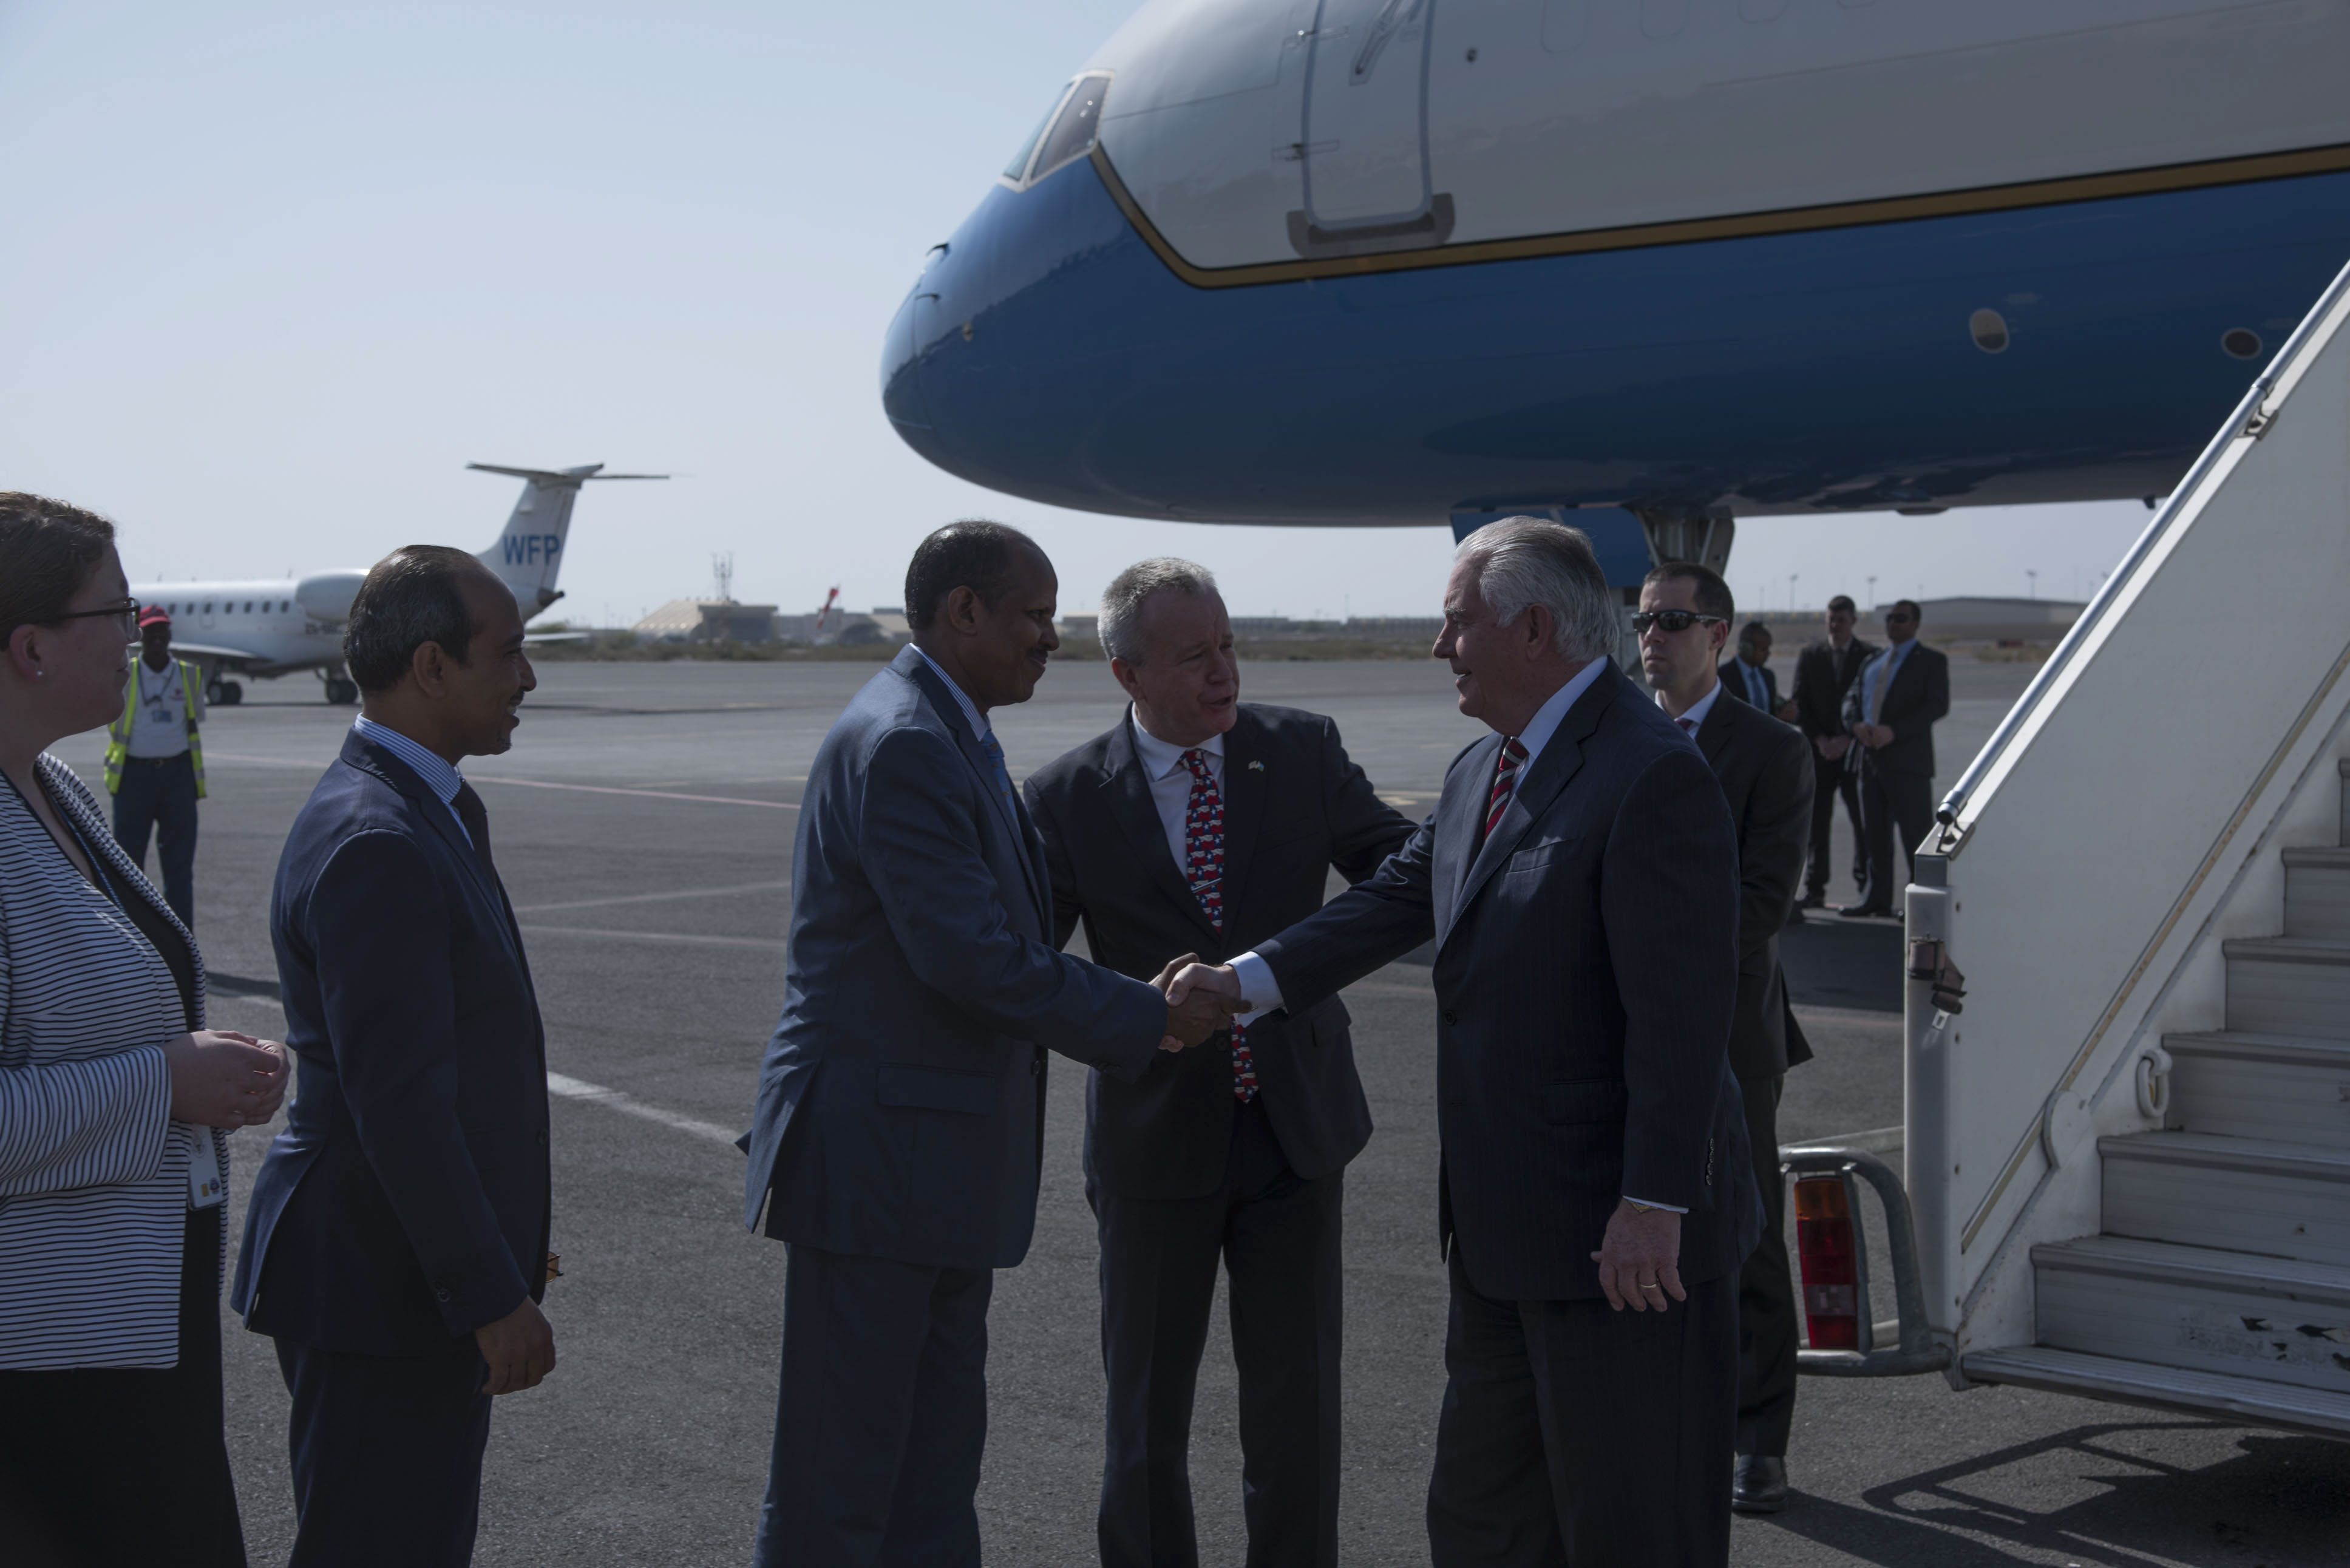 Foreign Minister Mahmoud Ali Youssouf greets U.S. Secretary of State Rex Tillerson at Djibouti International Airport, March 9, 2018. Secretary Tillerson met with Youssouf in Djibouti to discuss the U.S.-Djiboutian partnership, and exchanged views on bilateral concerns, security threats, and economic reforms. (U.S. Air National Guard photo by Staff Sgt. Allyson L. Manners)